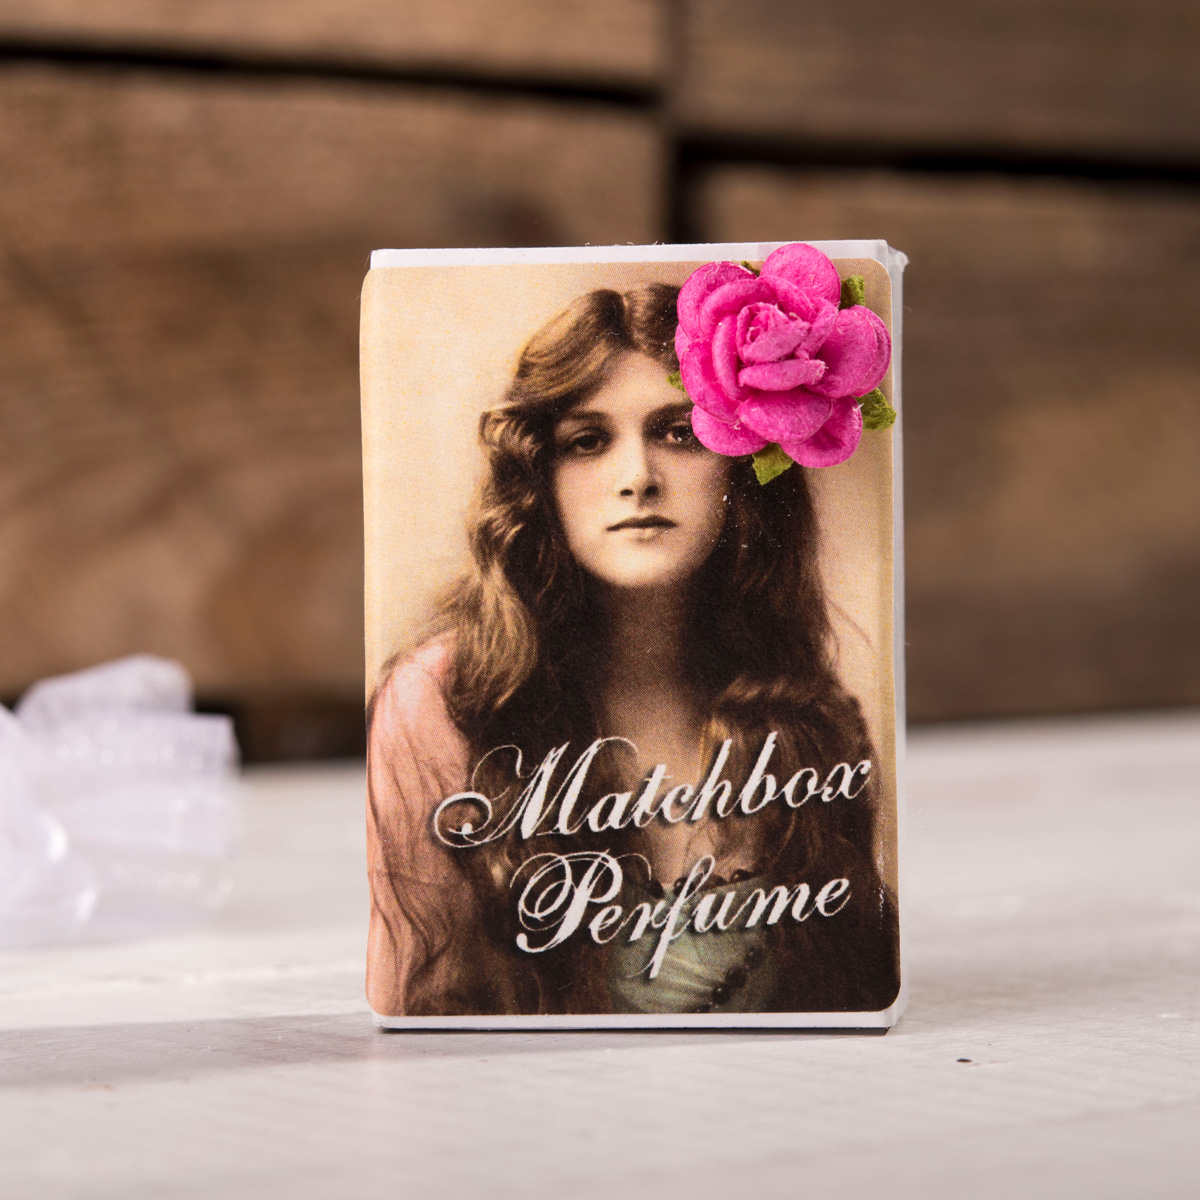 Pretty Little Wedding Favours - Matchbox Solid Perfume